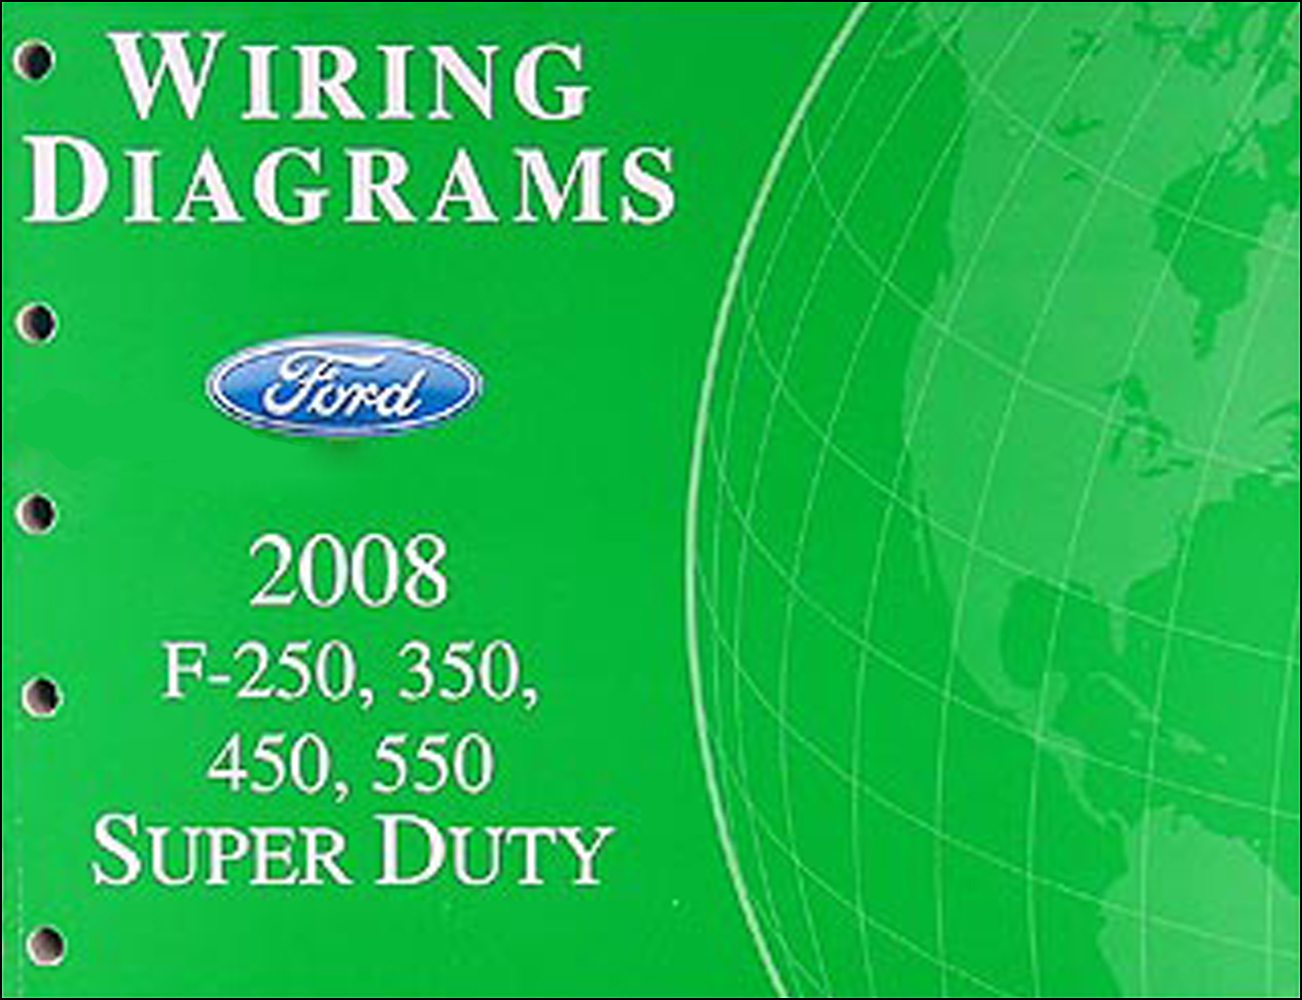 2008 ford f 250 thru 550 super duty wiring diagram manual original 1999 Ford F350 Wiring Diagram